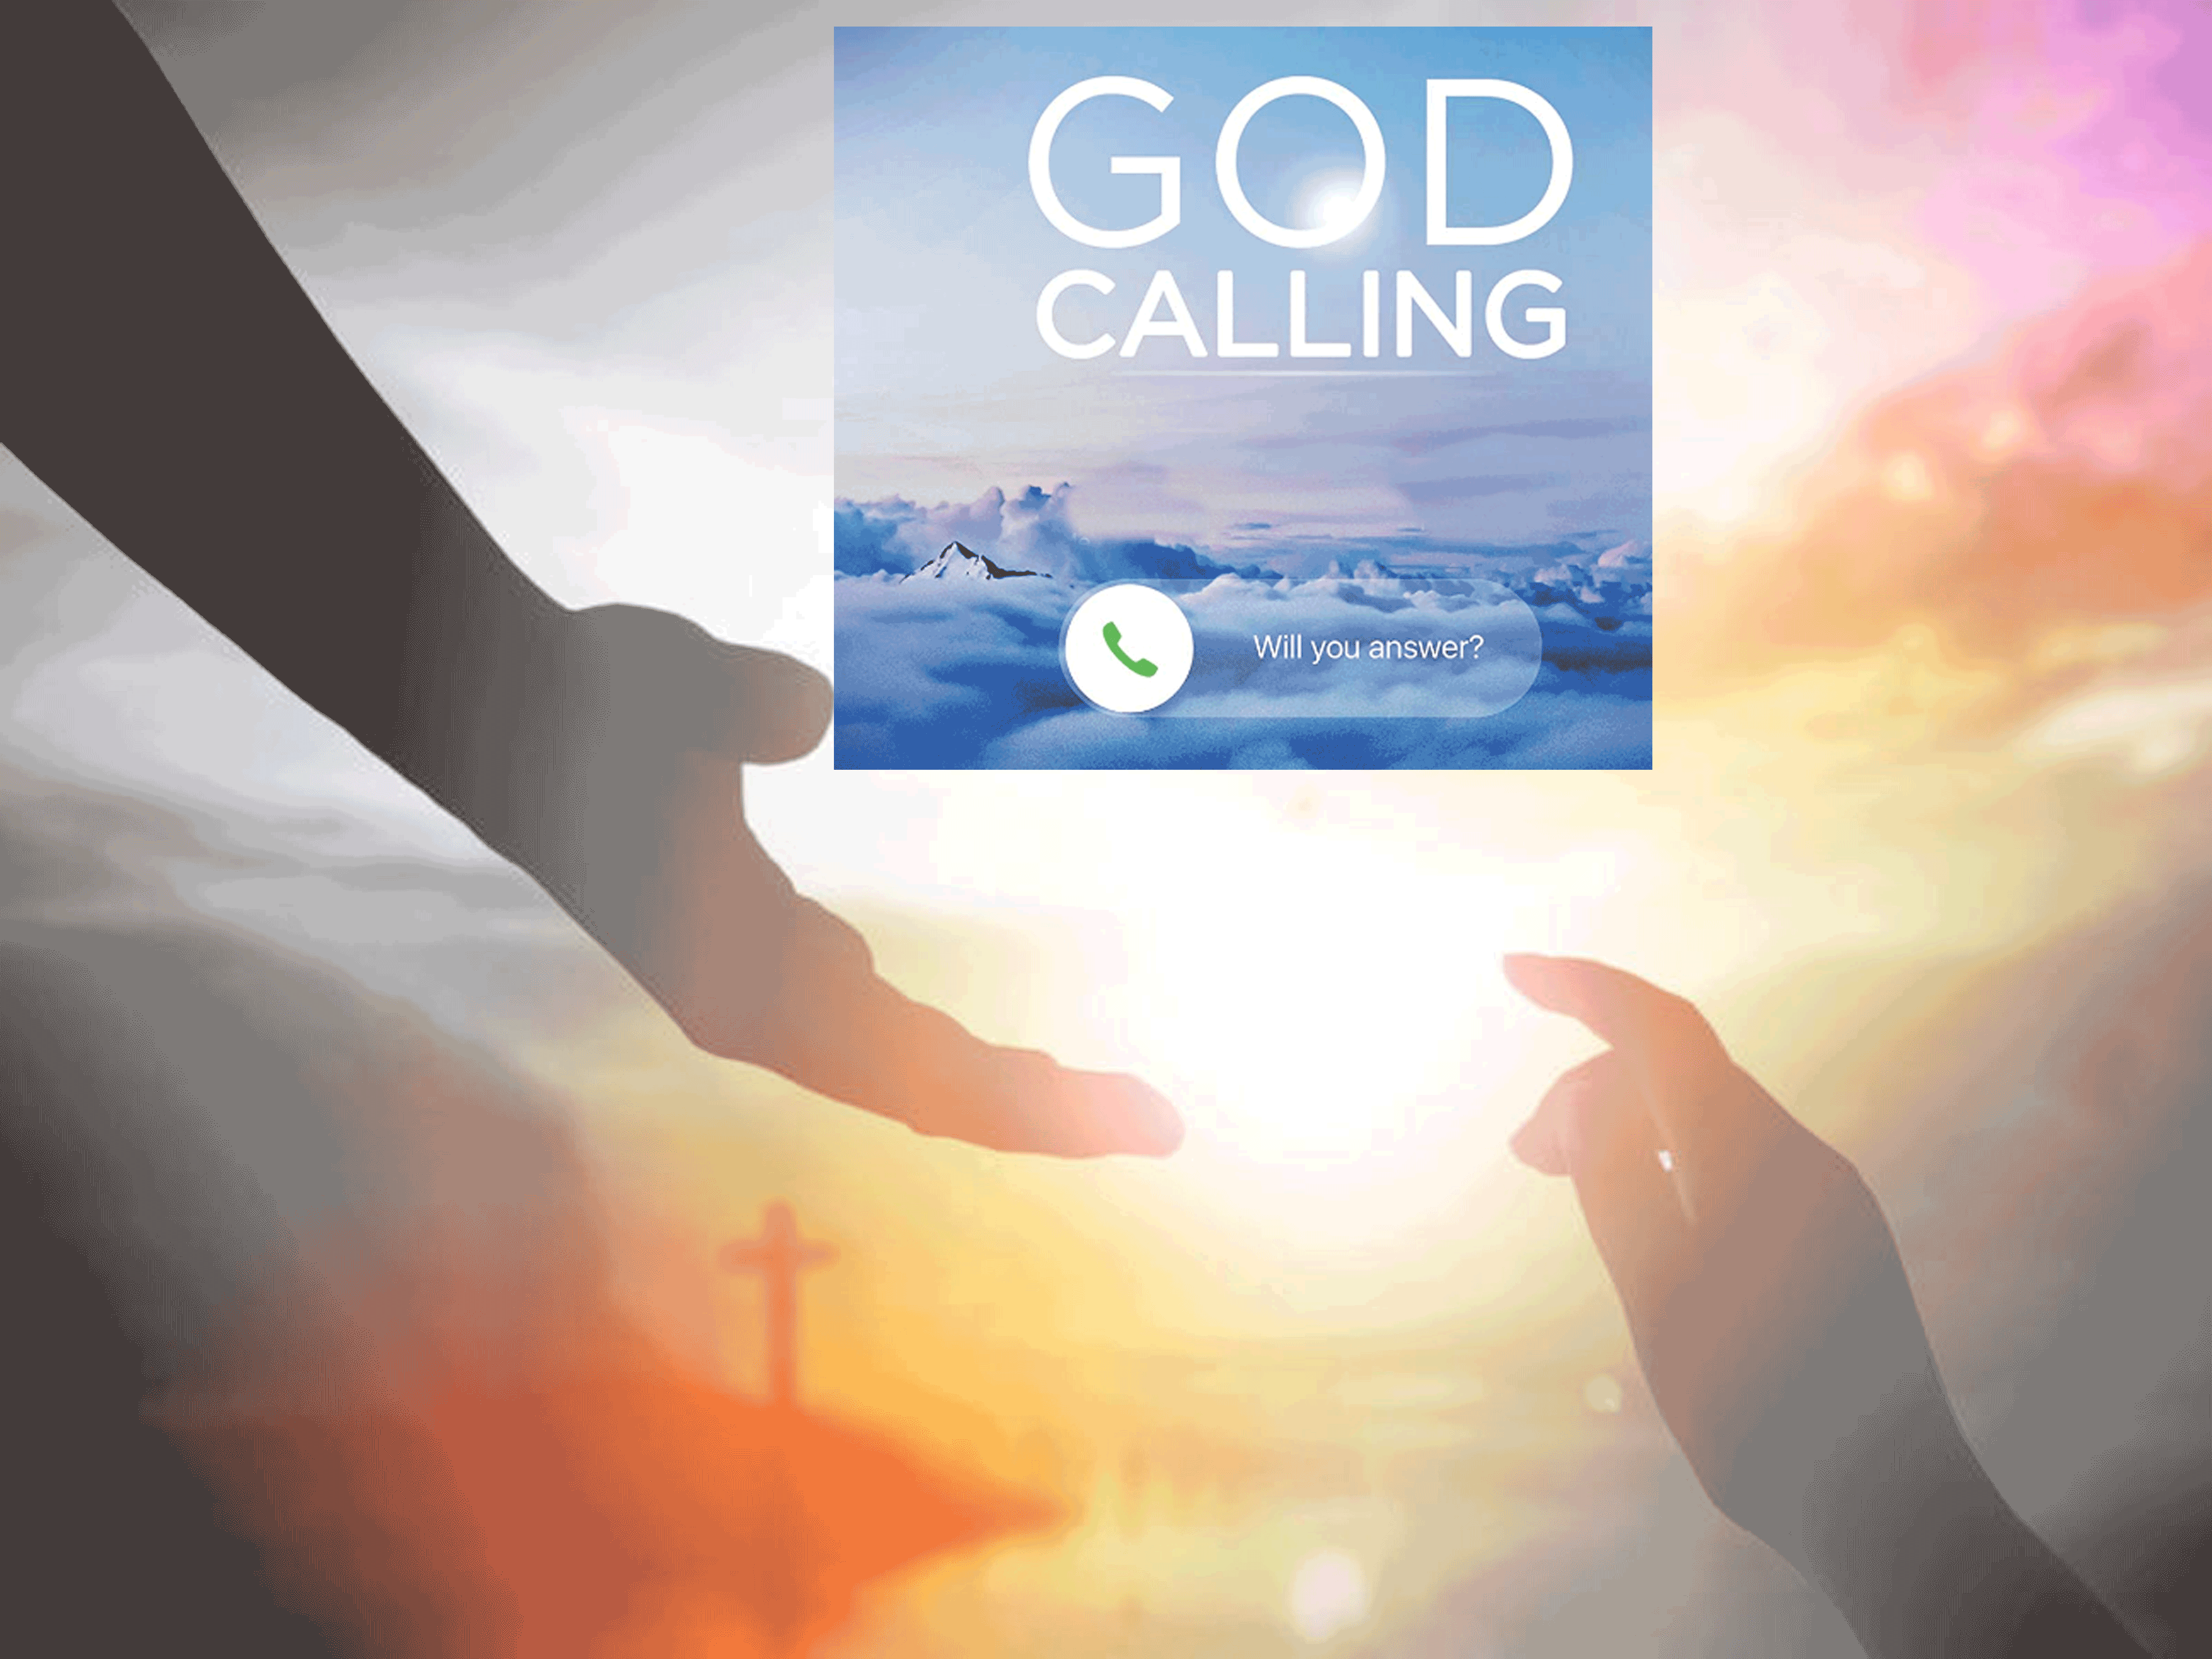 The Calling of God